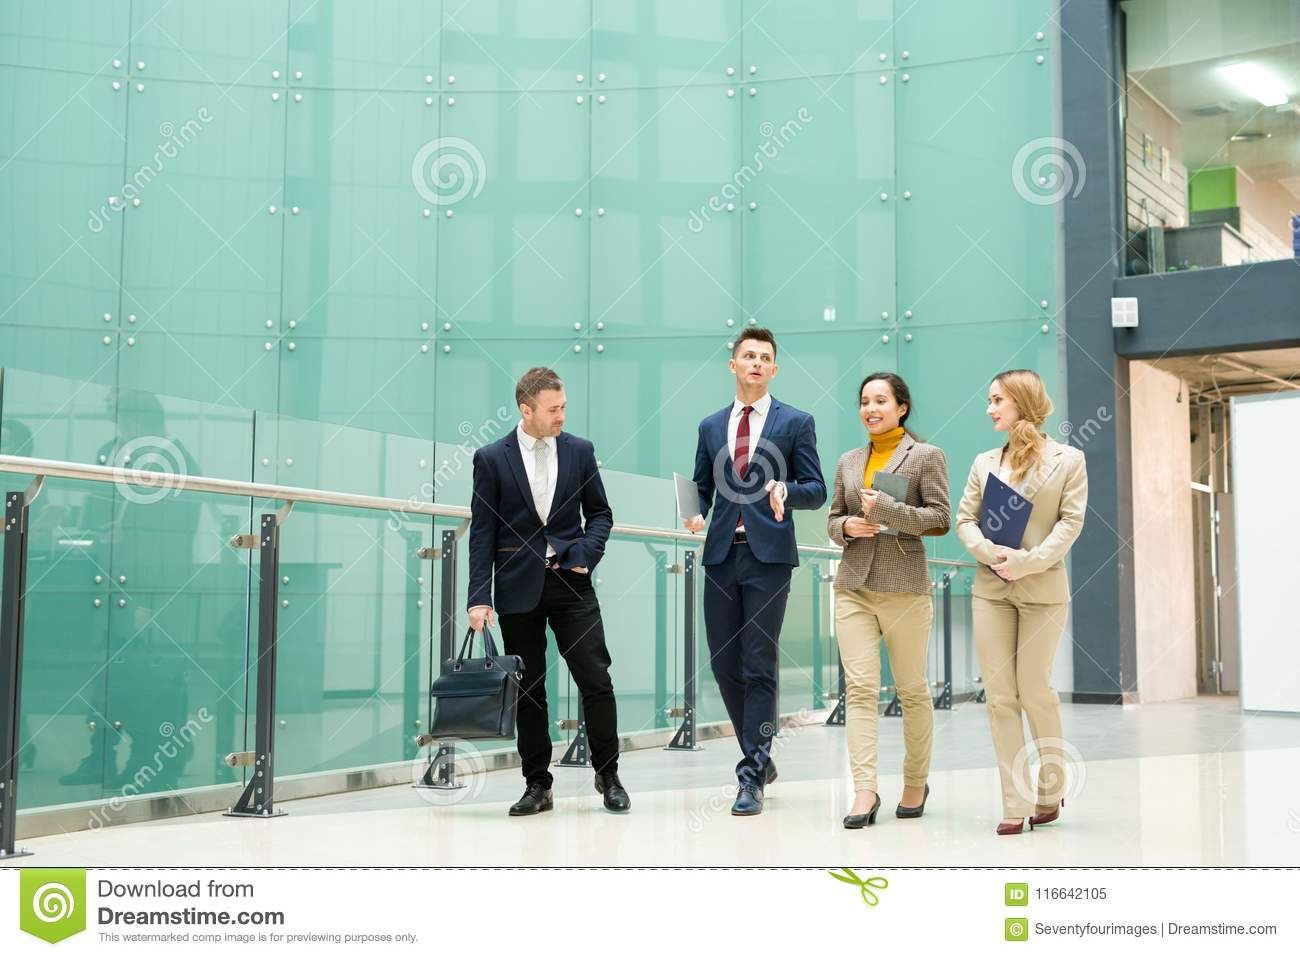 Group of Business People Walking from Office